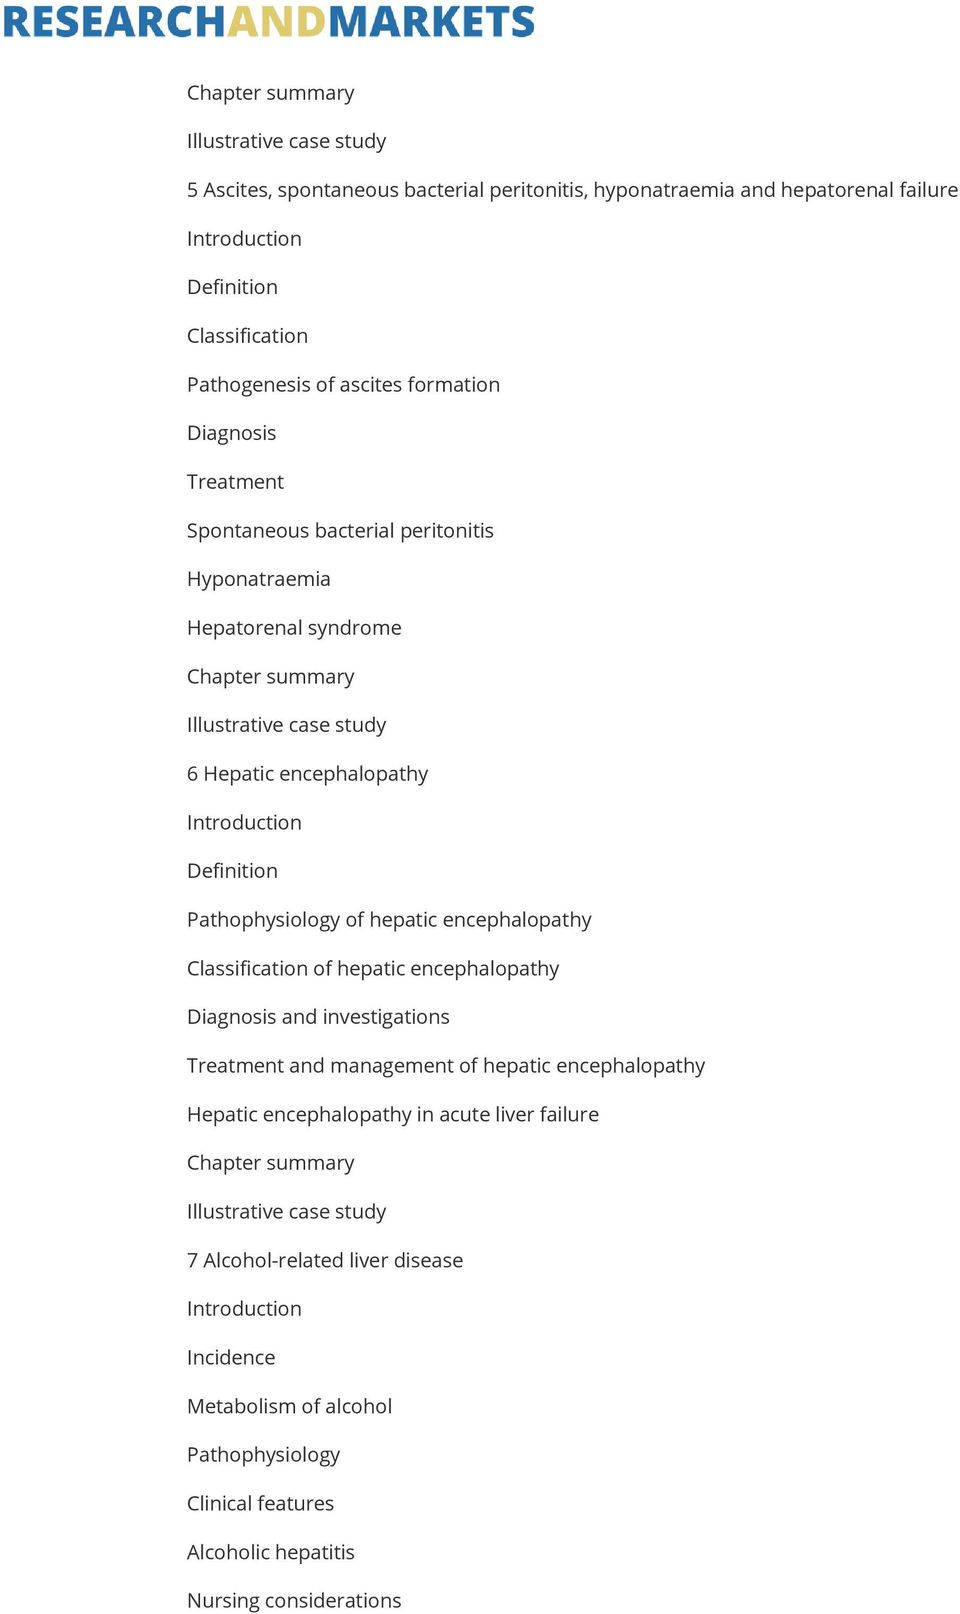 Classification of hepatic encephalopathy Diagnosis and investigations Treatment and management of hepatic encephalopathy Hepatic encephalopathy in